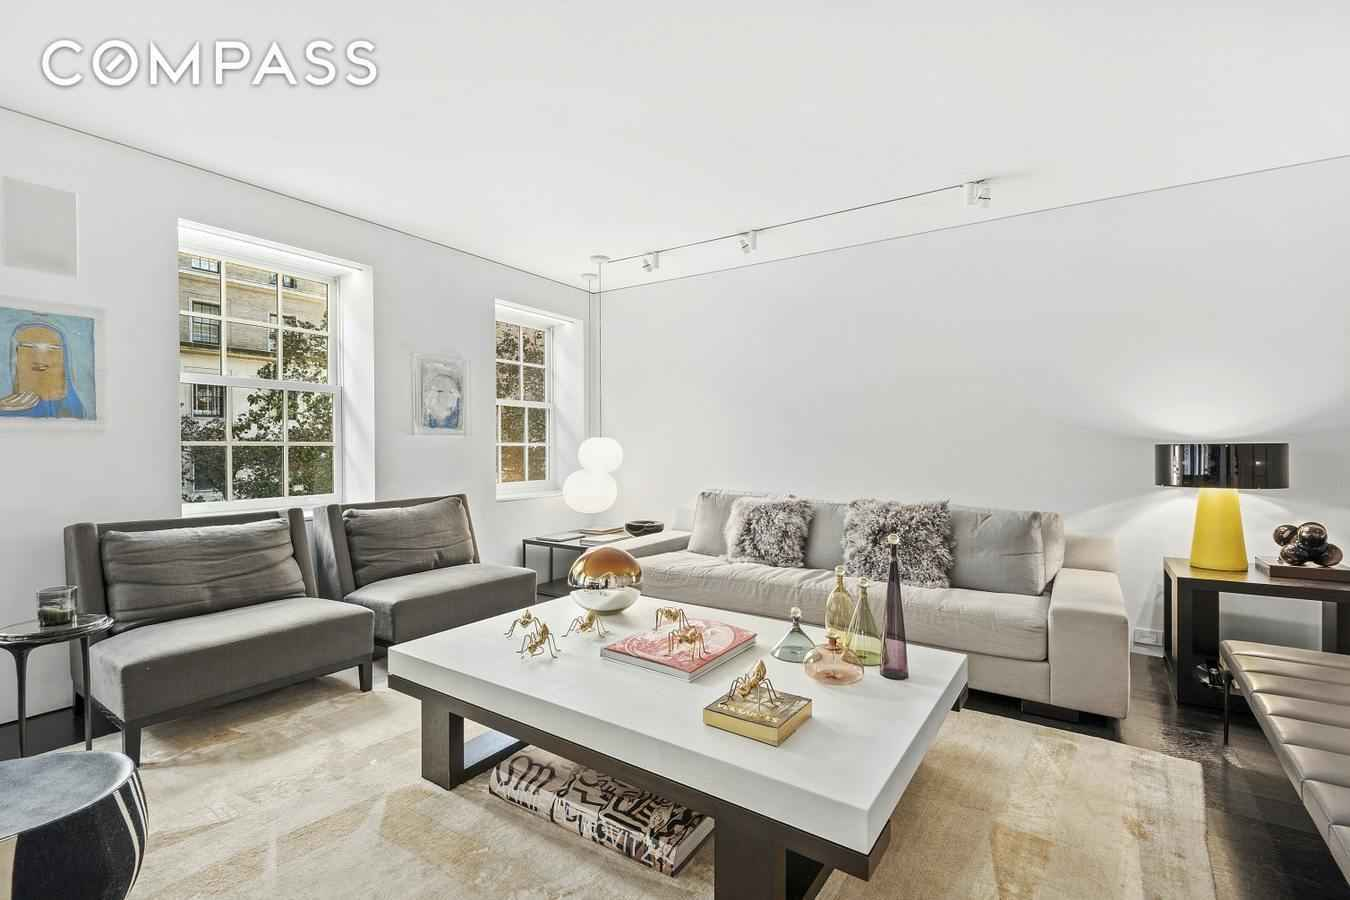 Apartment for sale at 52 East 72nd Street, Apt 3-AB